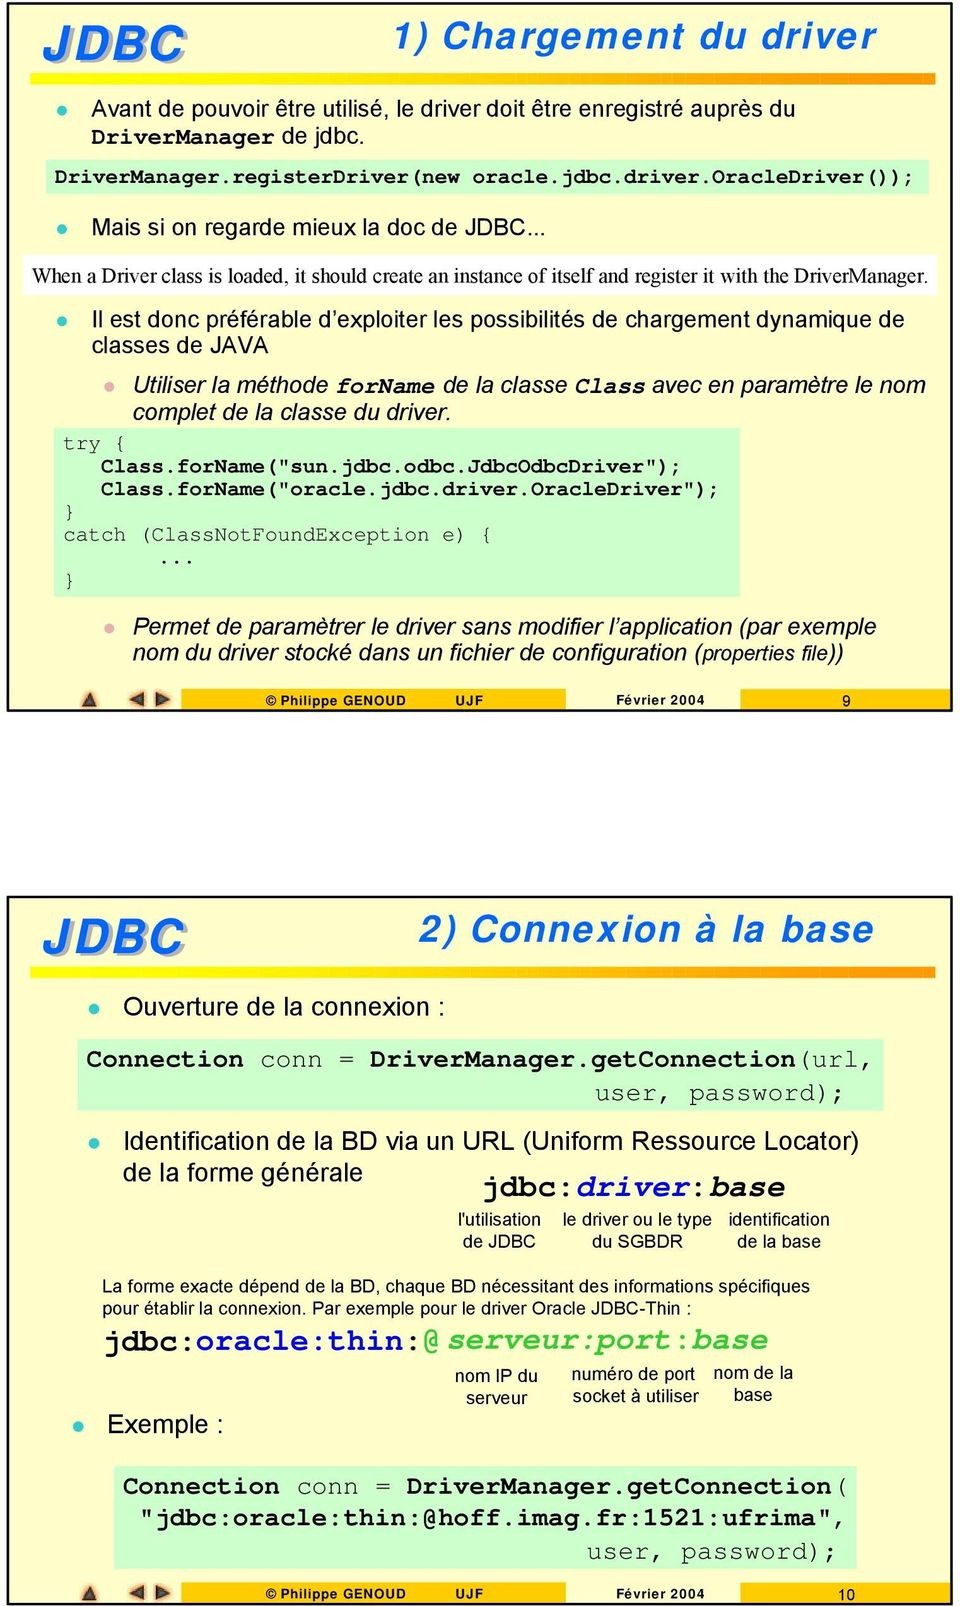 "try { Class.forName(""sun.jdbc.odbc.JdbcOdbcDriver""); Class.forName(""oracle.jdbc.driver."